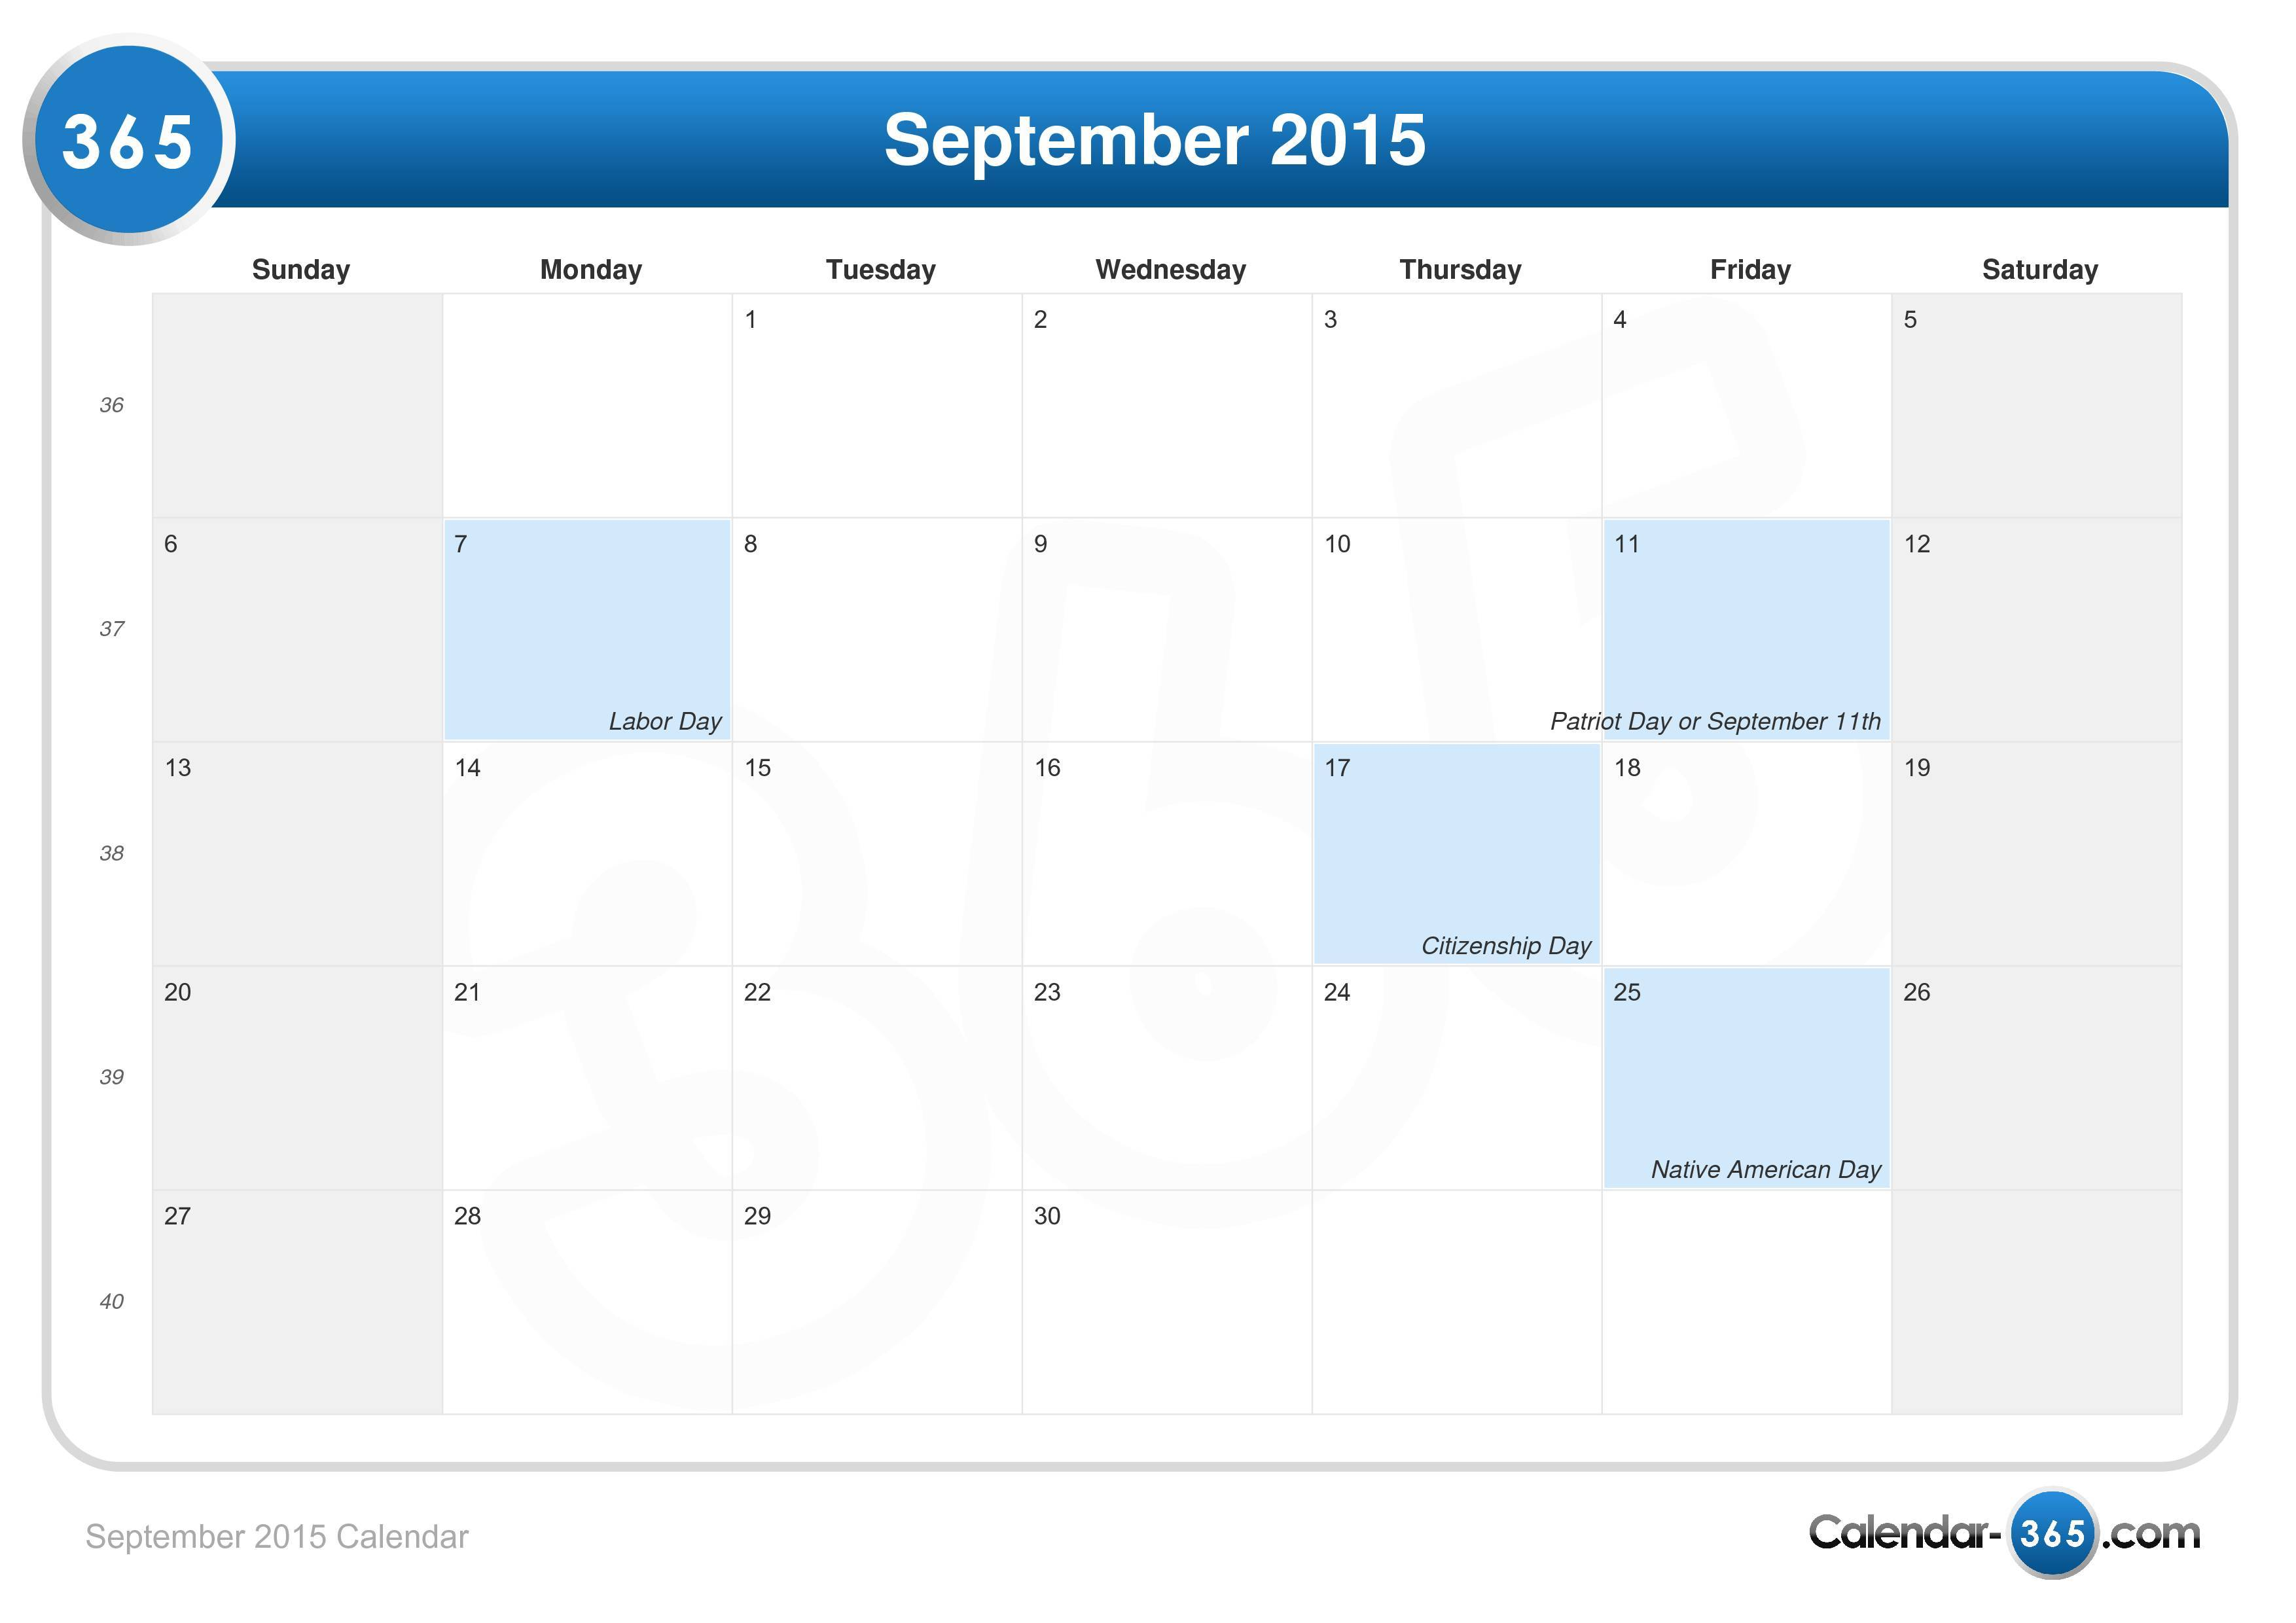 Sept Calendar 2020.September 2015 Calendar With Holidays Erha Yasamayolver Com